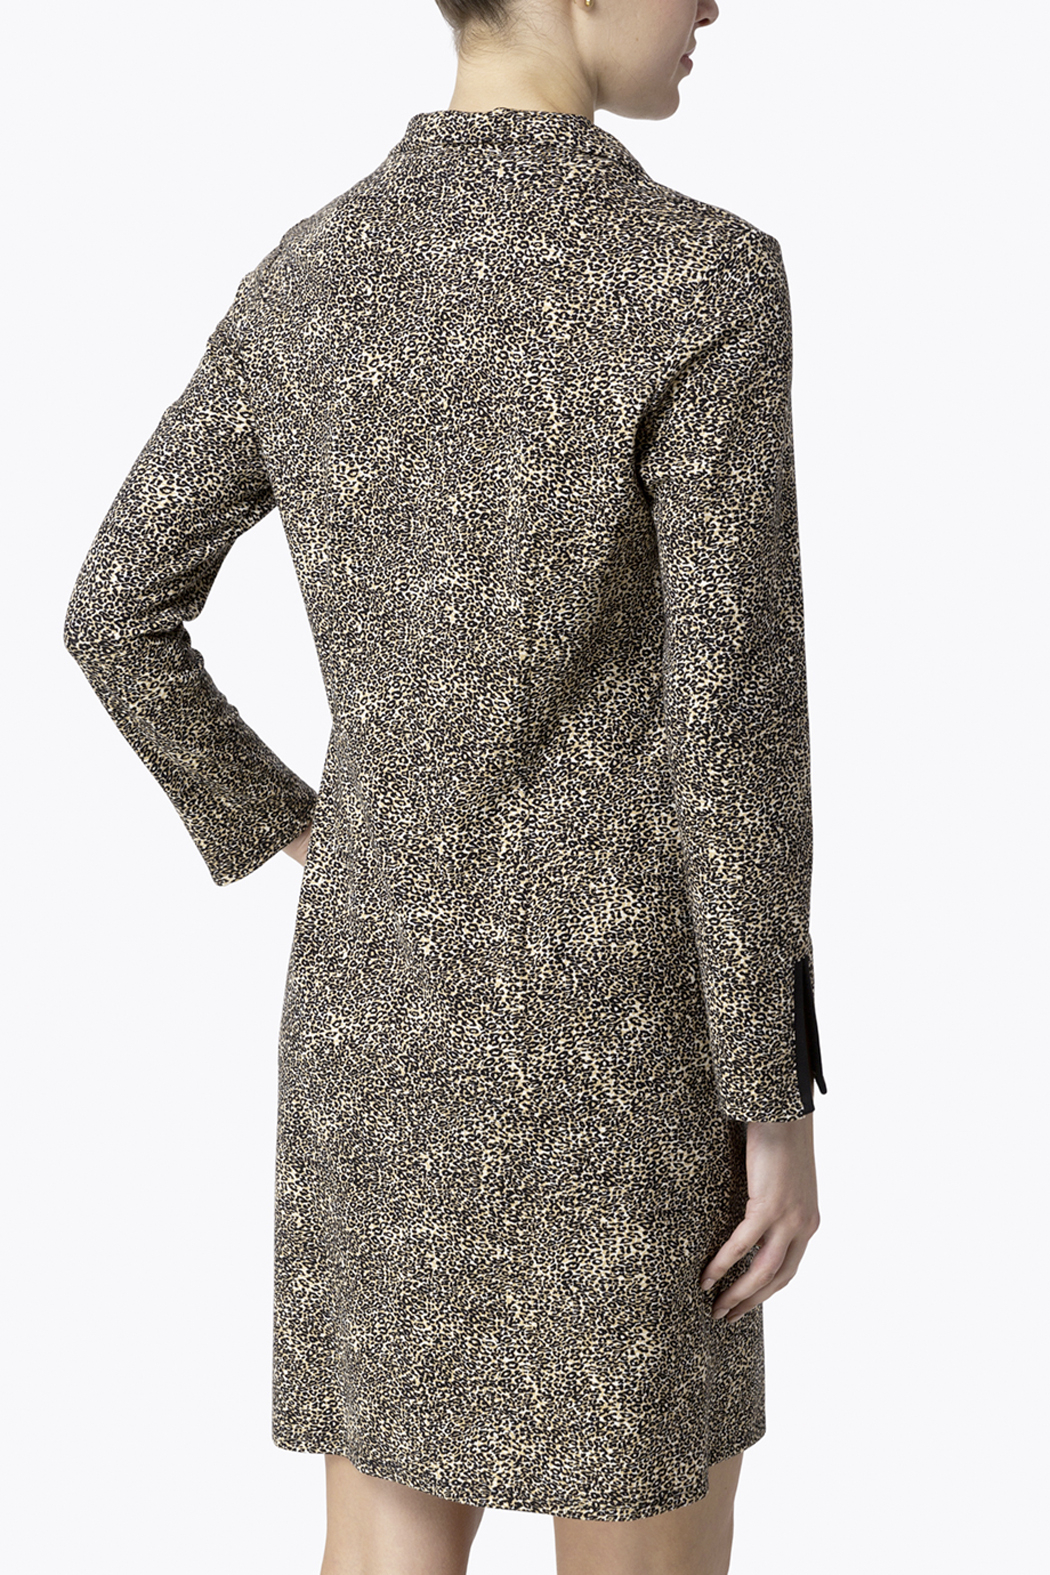 Jude Connally Anna Textured Camel/Cheetah Ponte Dress - Front Full Image